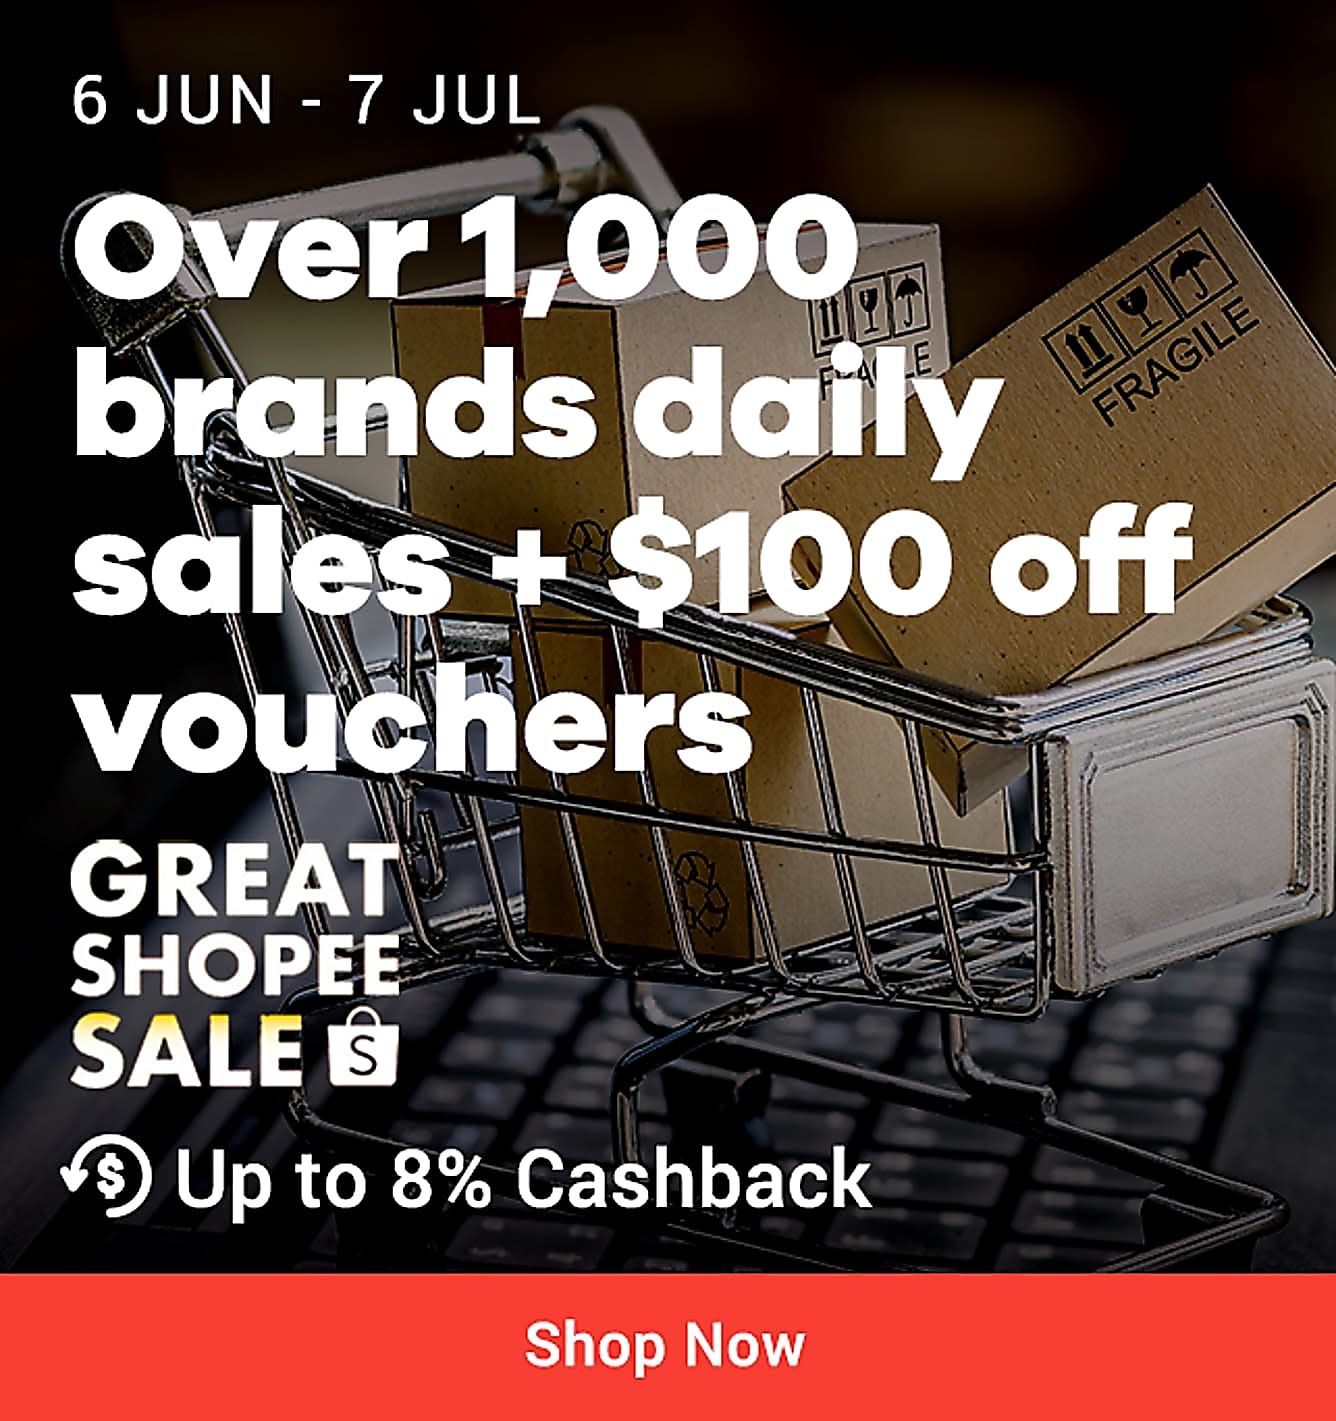 Shopee great shopee sale till 7 july